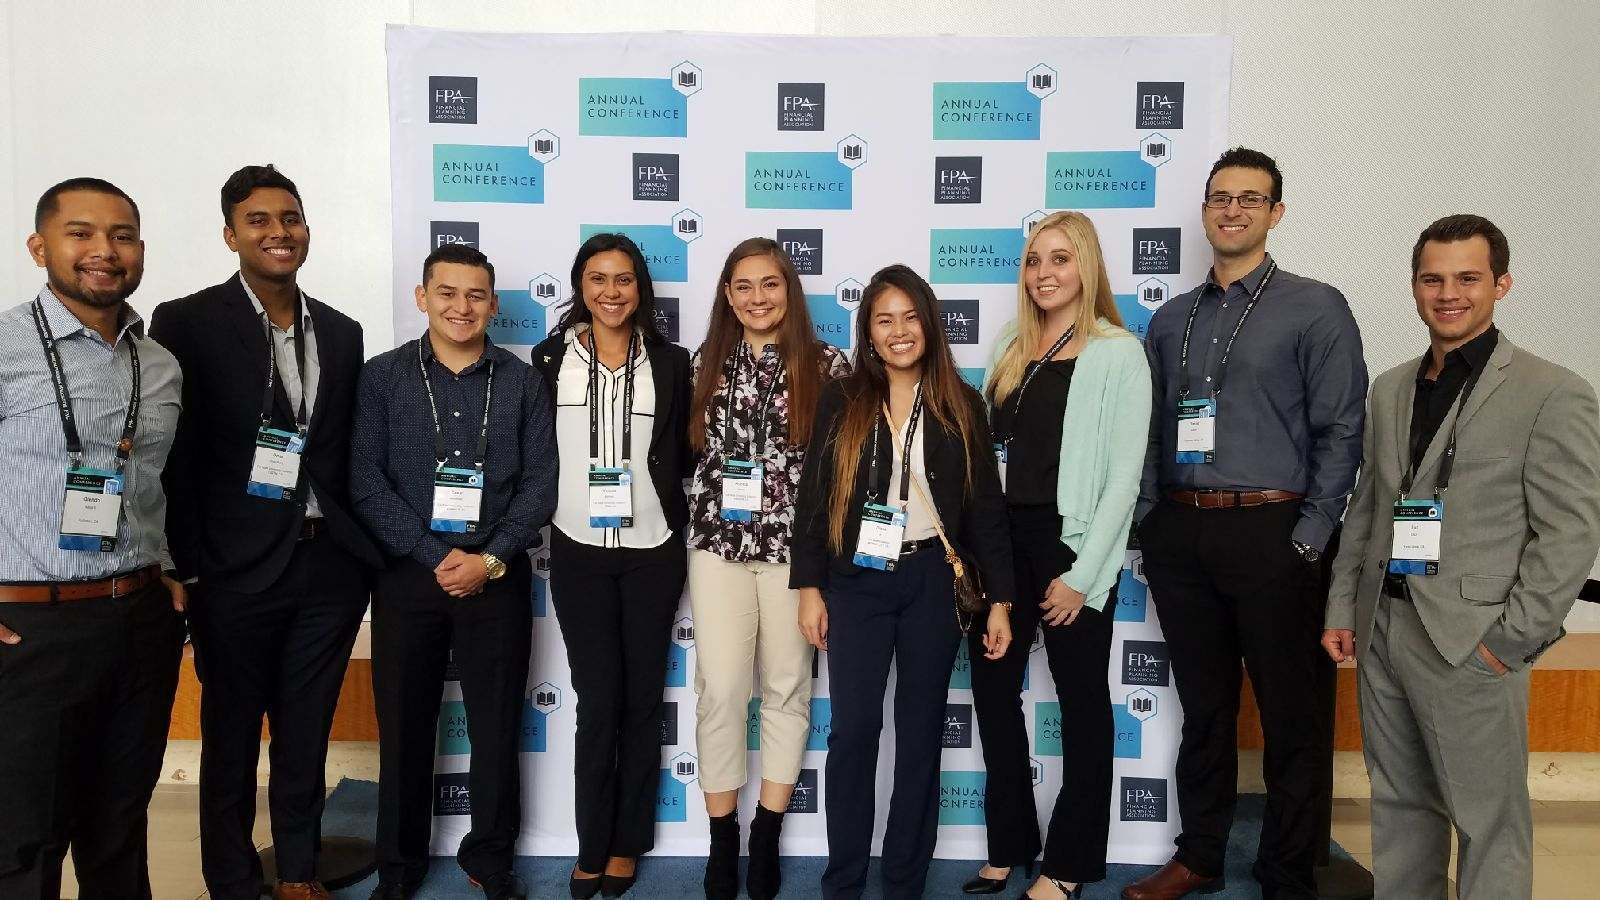 Mihaylo College personal finance students together at the Financial Planning Association conference in Nashville, Tennessee, in October 2017.